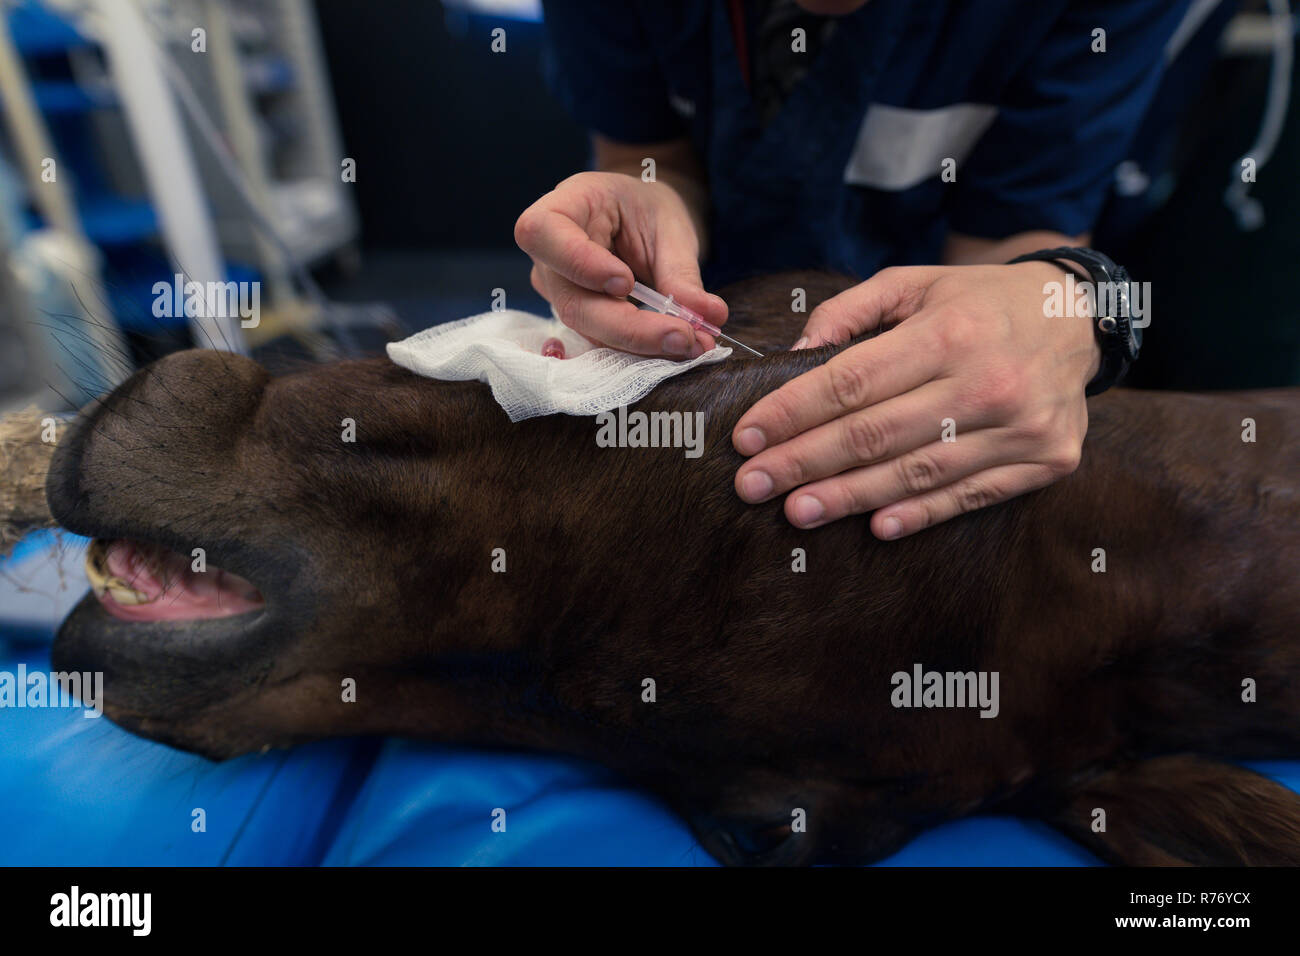 Female surgeon operating a horse in operation theatre - Stock Image